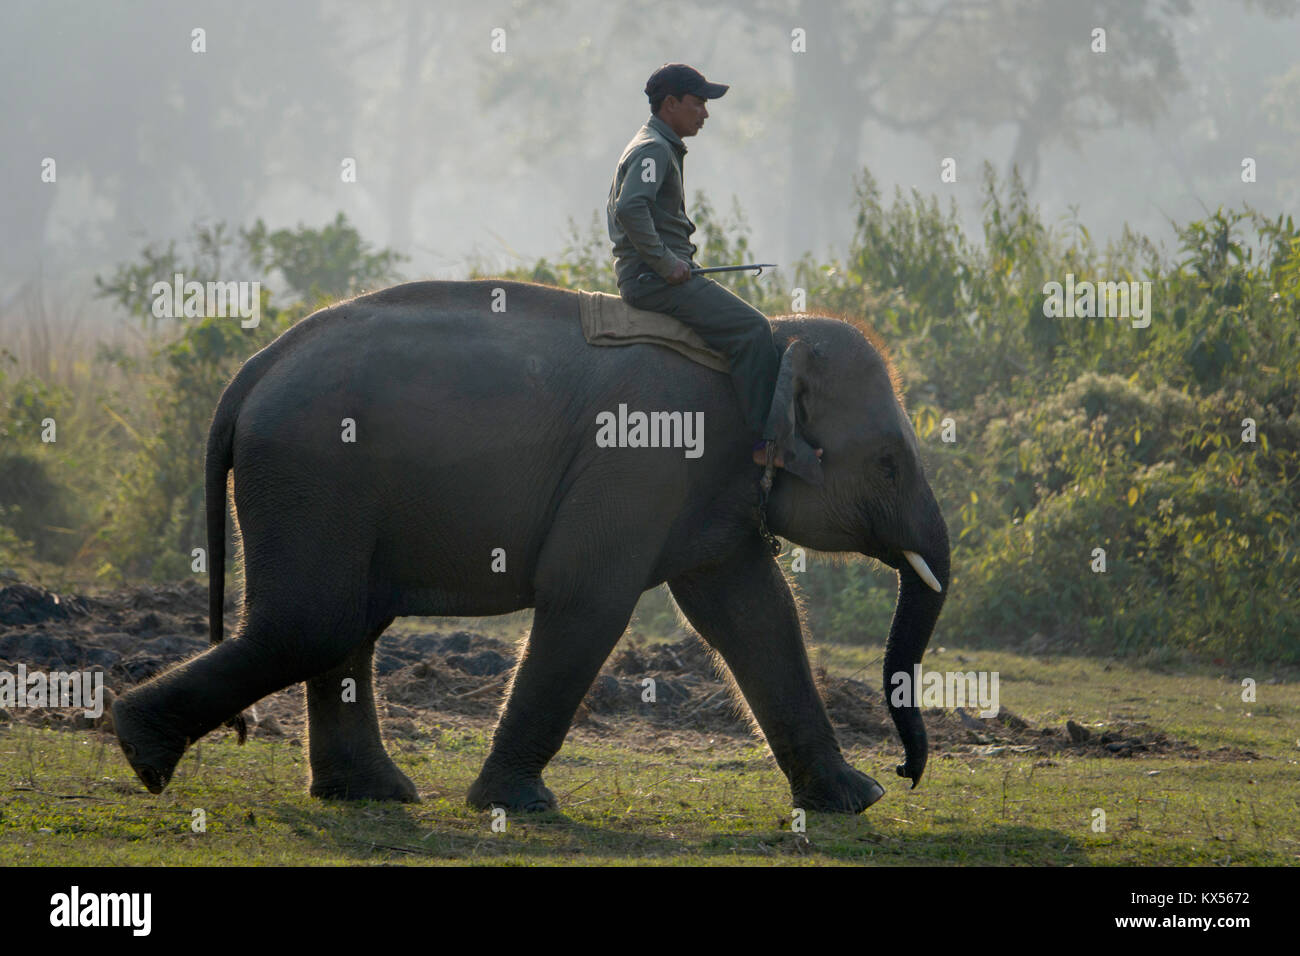 Mahout rides young elephant at breeding centre in Sauraha, Nepal - Stock Image